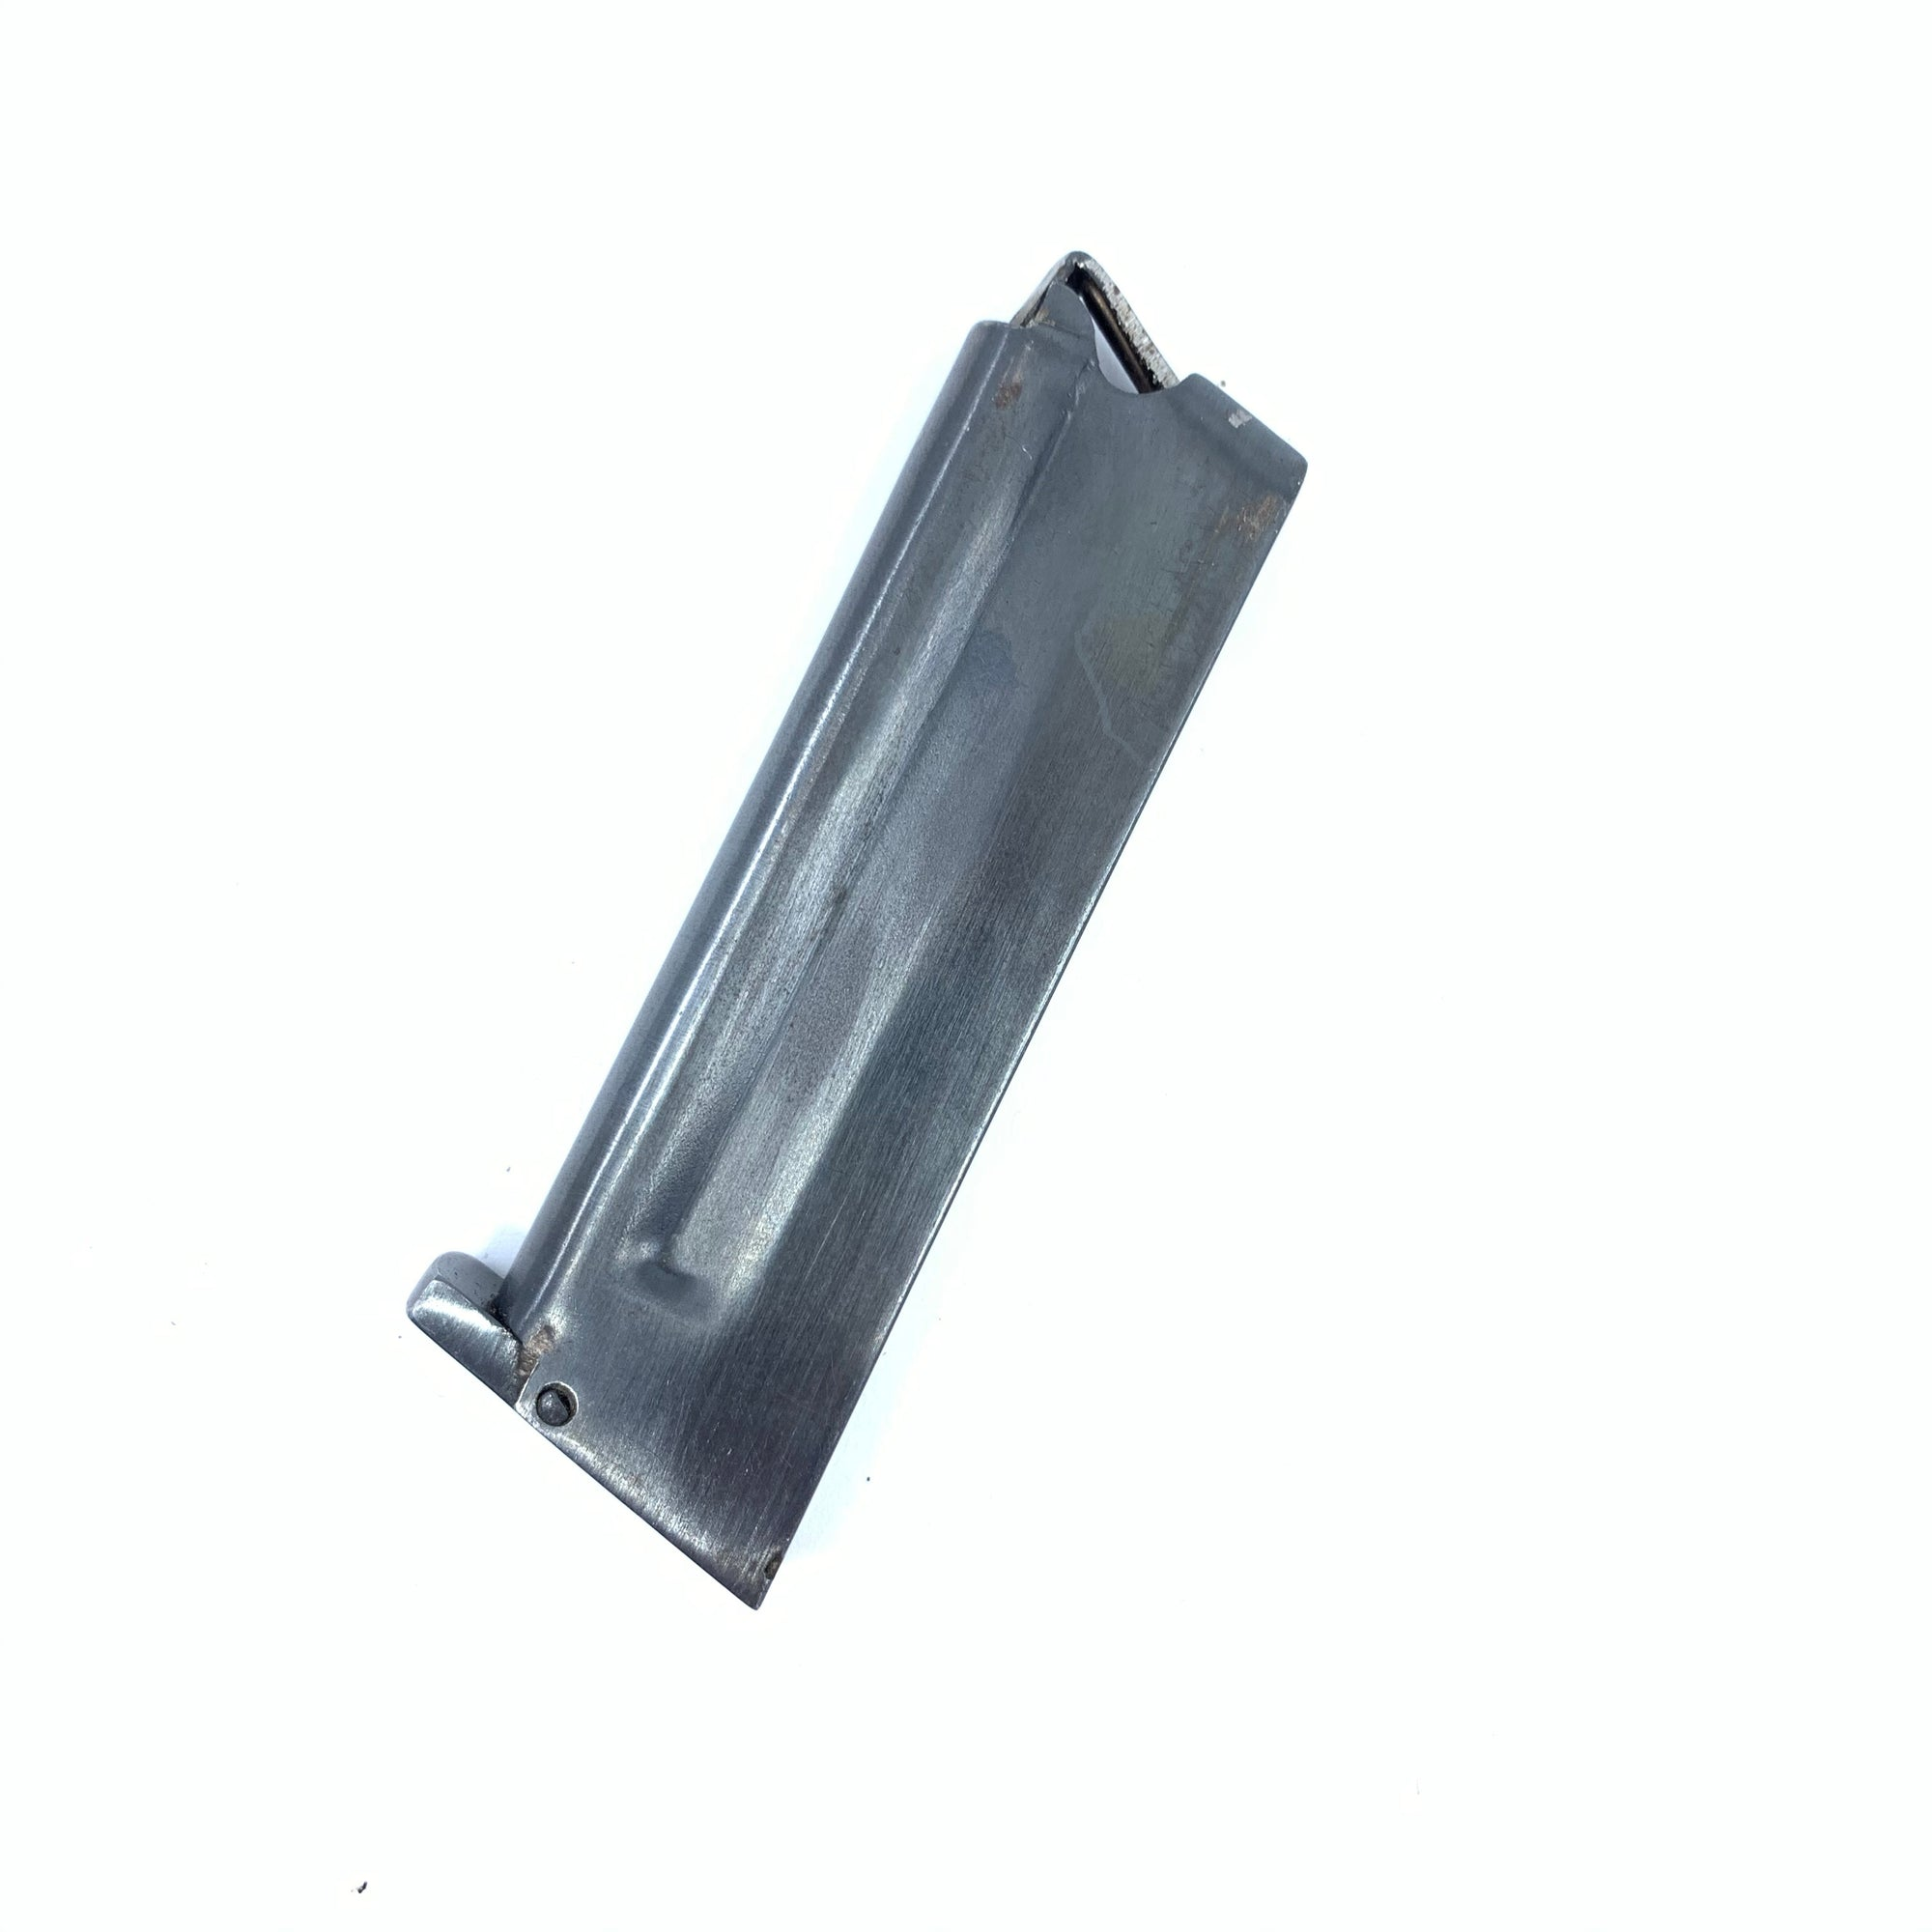 French MAB Mod D 22LR 9rd Magazine